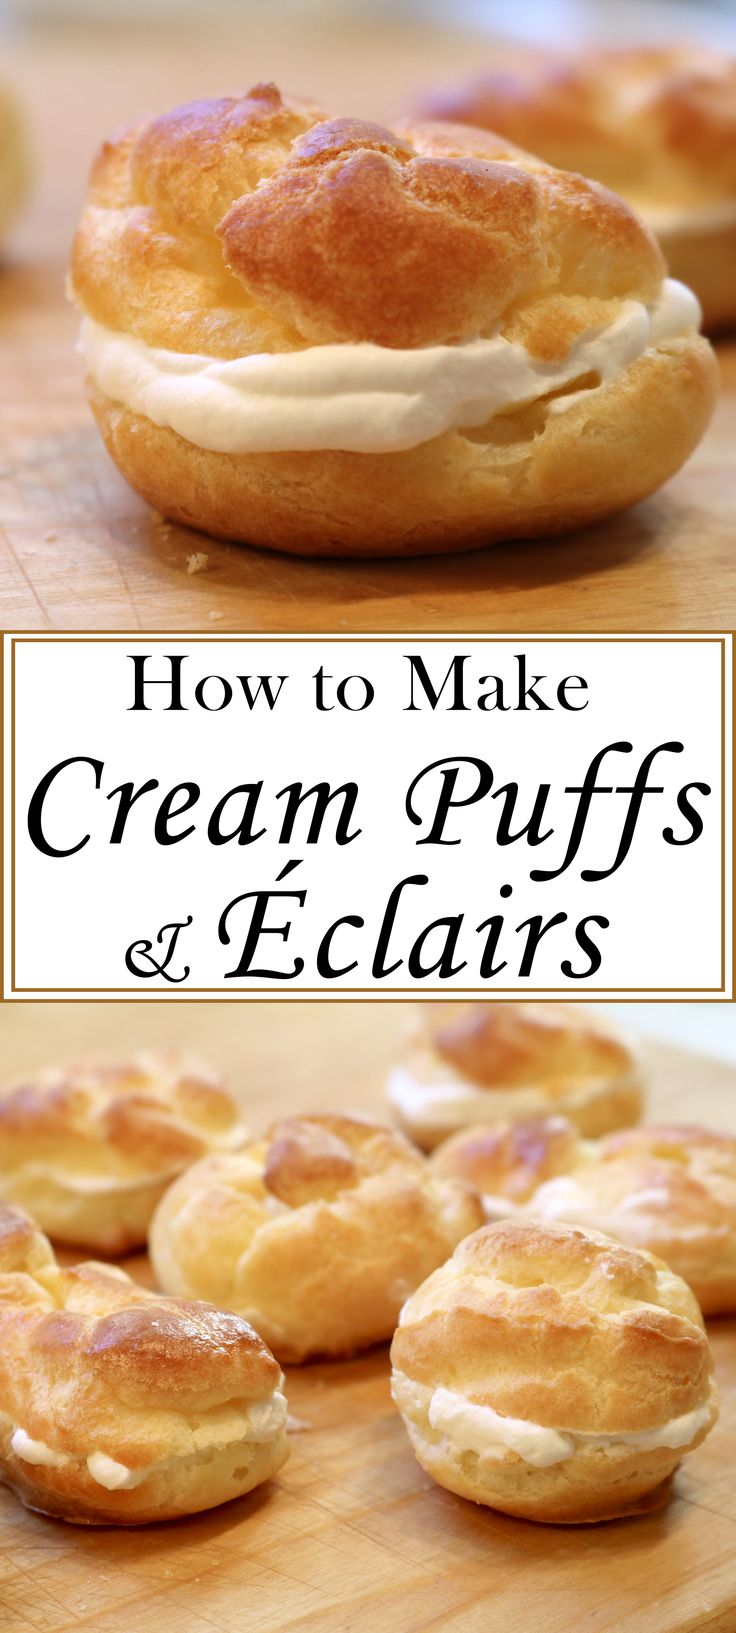 how to make eclairs filling